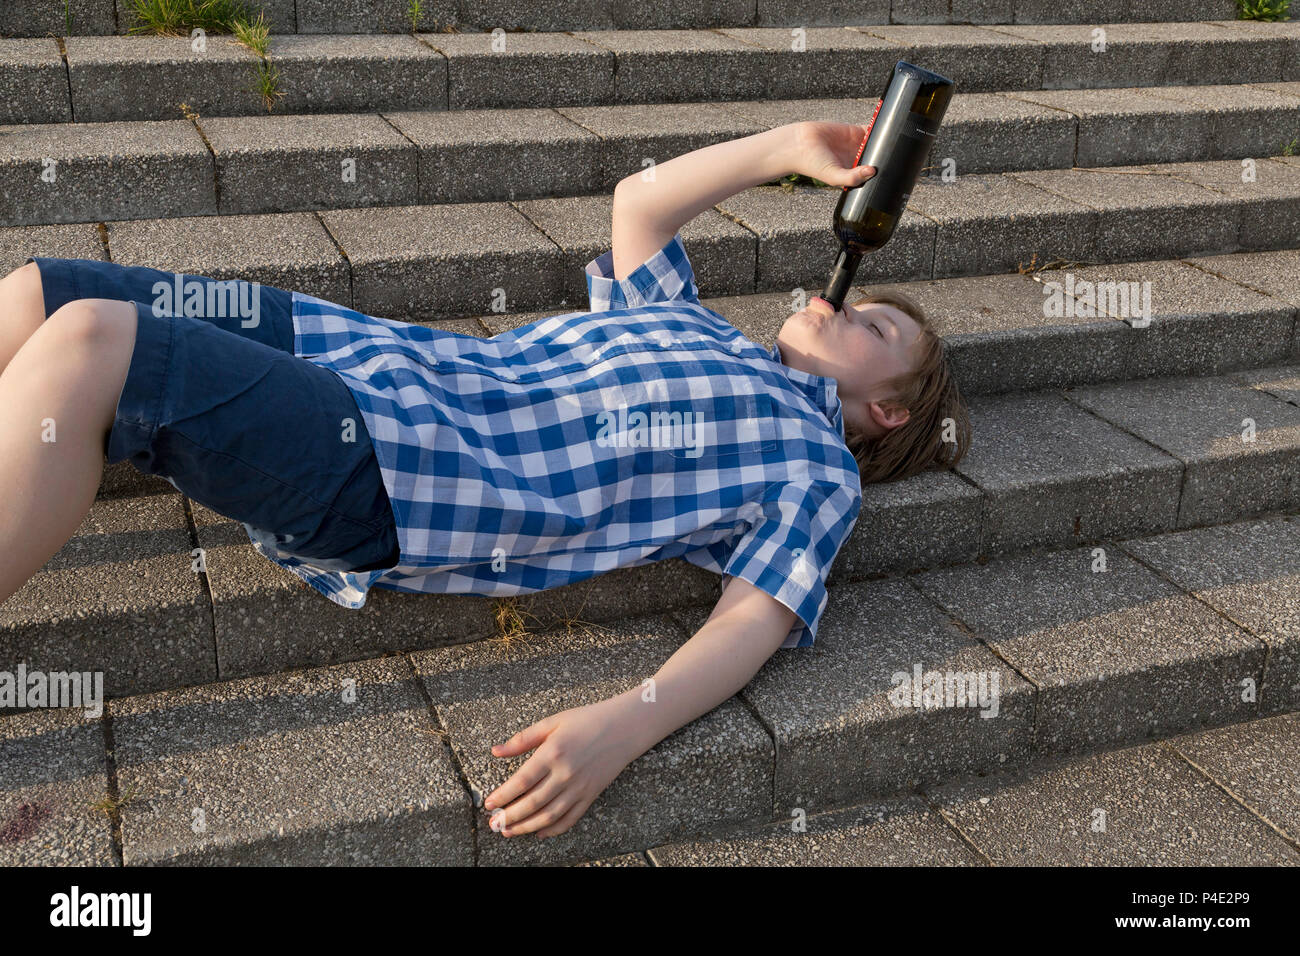 underage boy drinking whine (the scene is being acted) - Stock Image